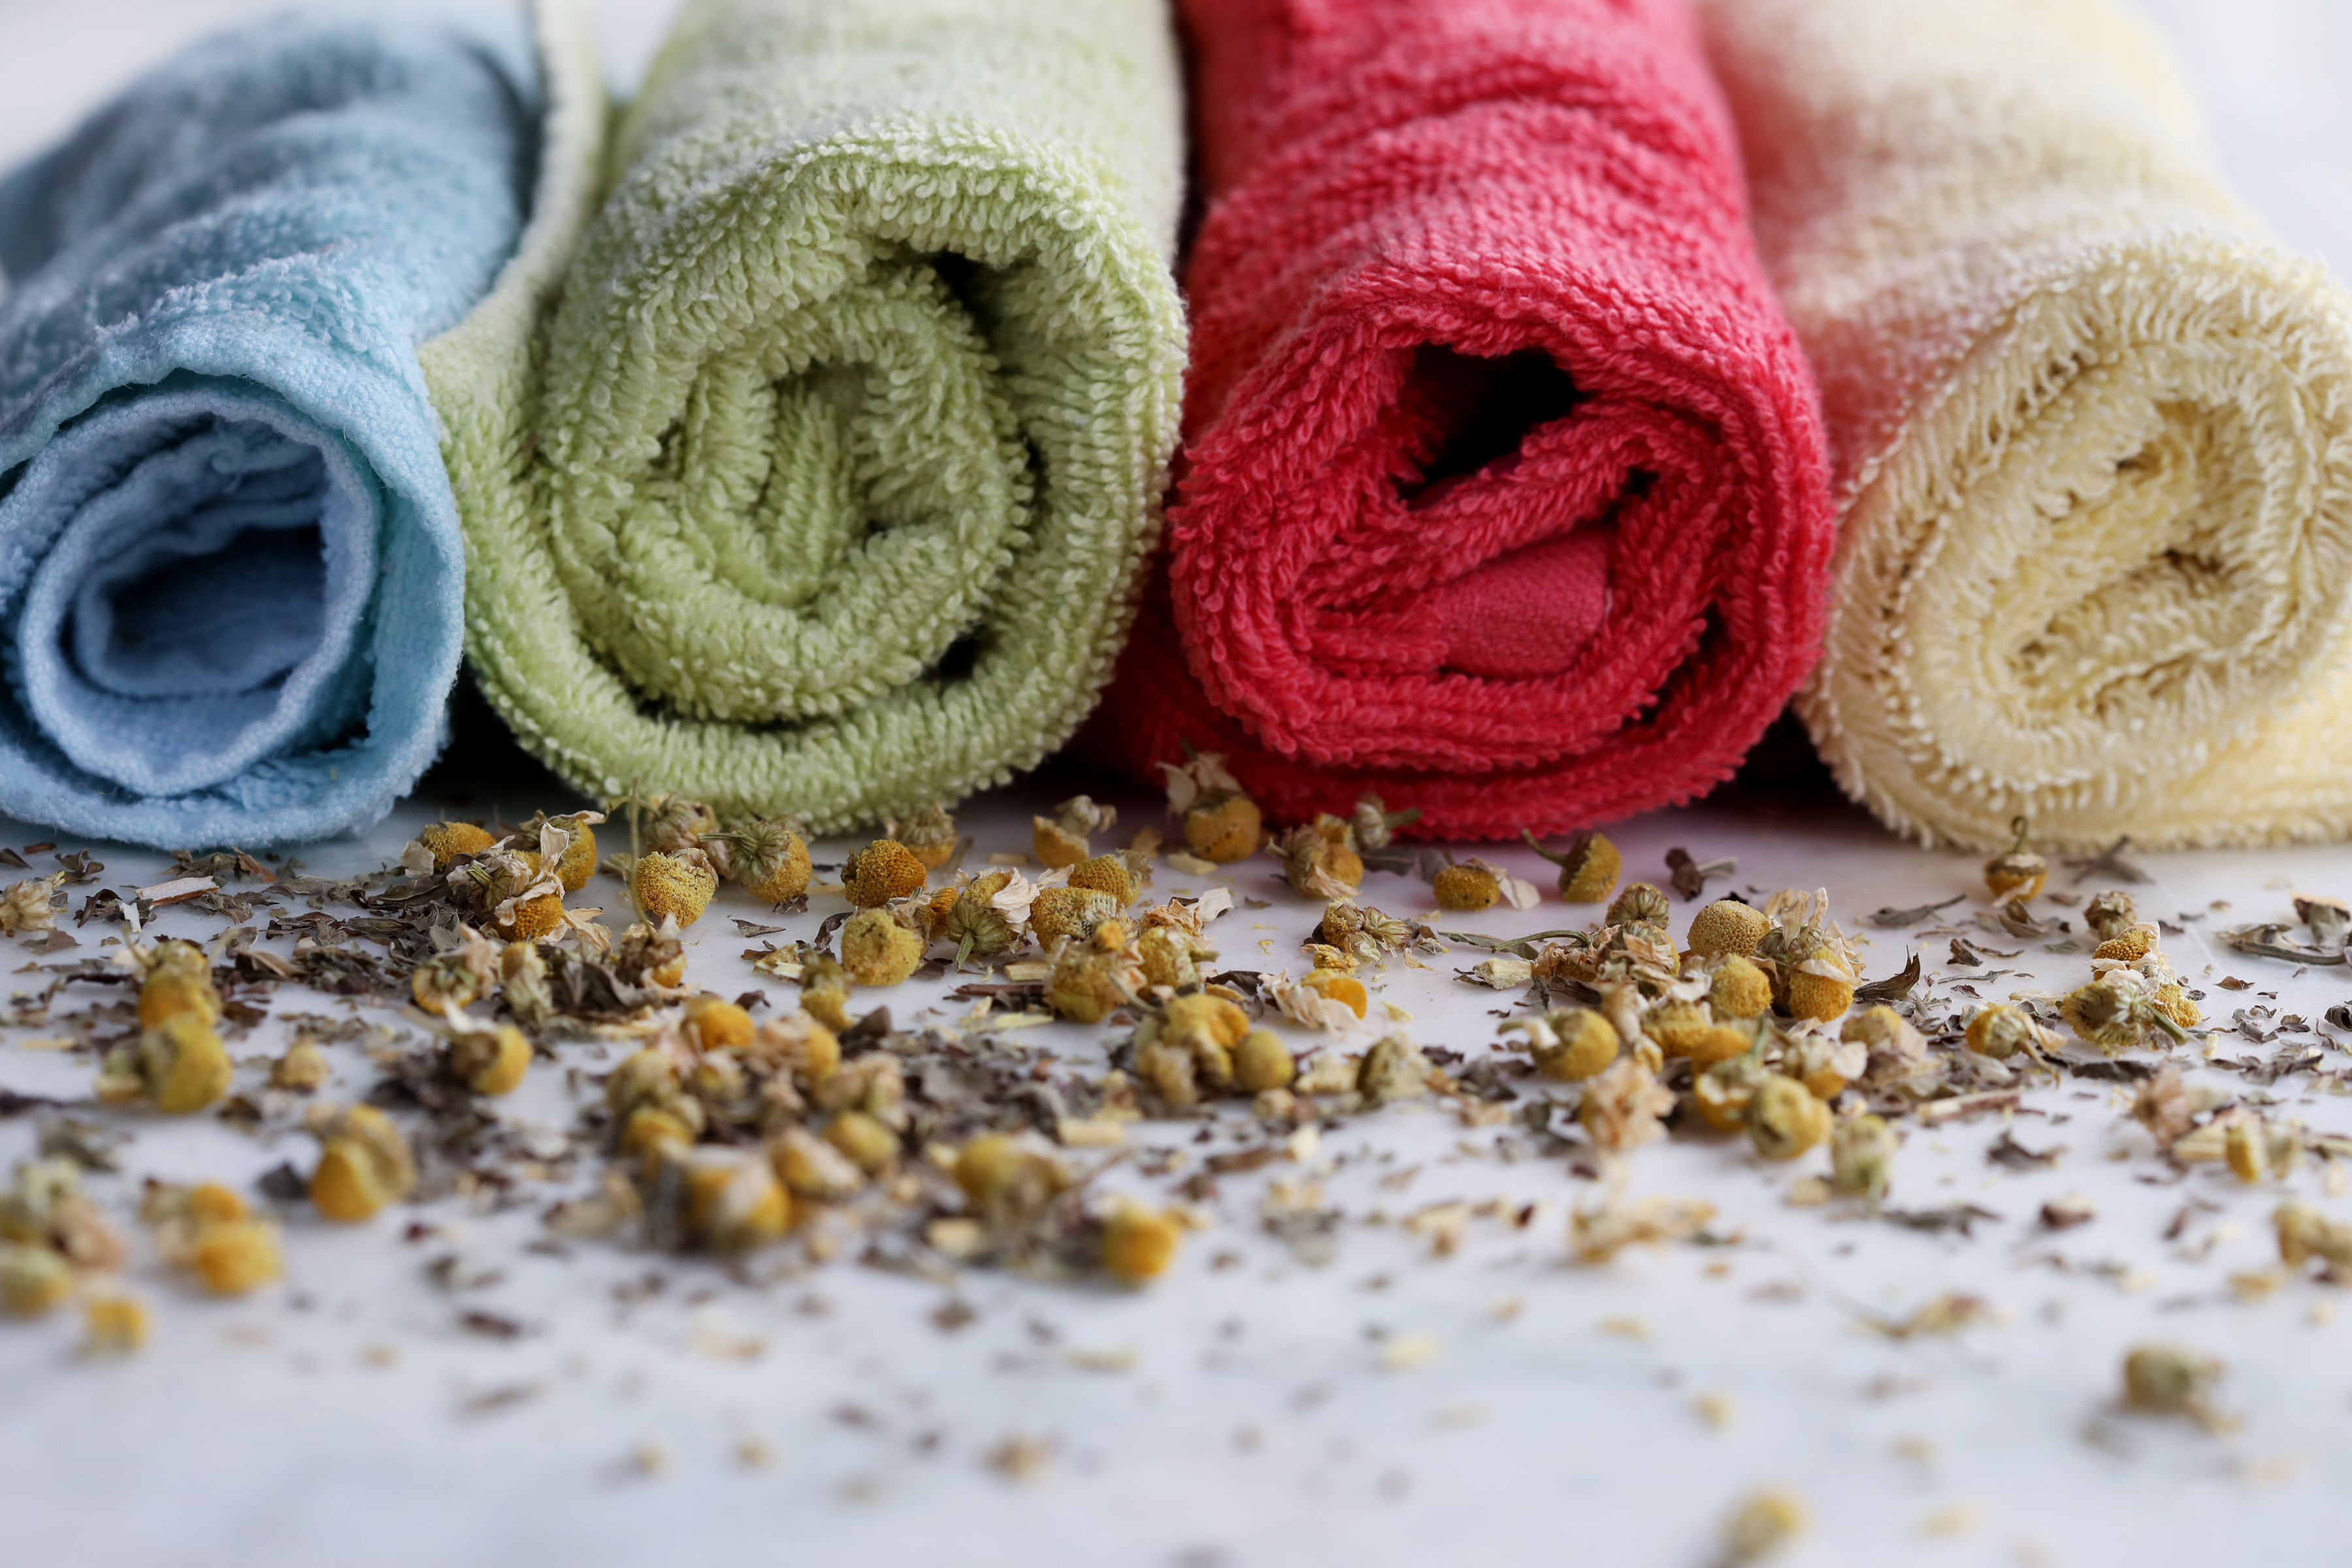 Colorful rolled towels with sprinkled chamomile on table in front of them.